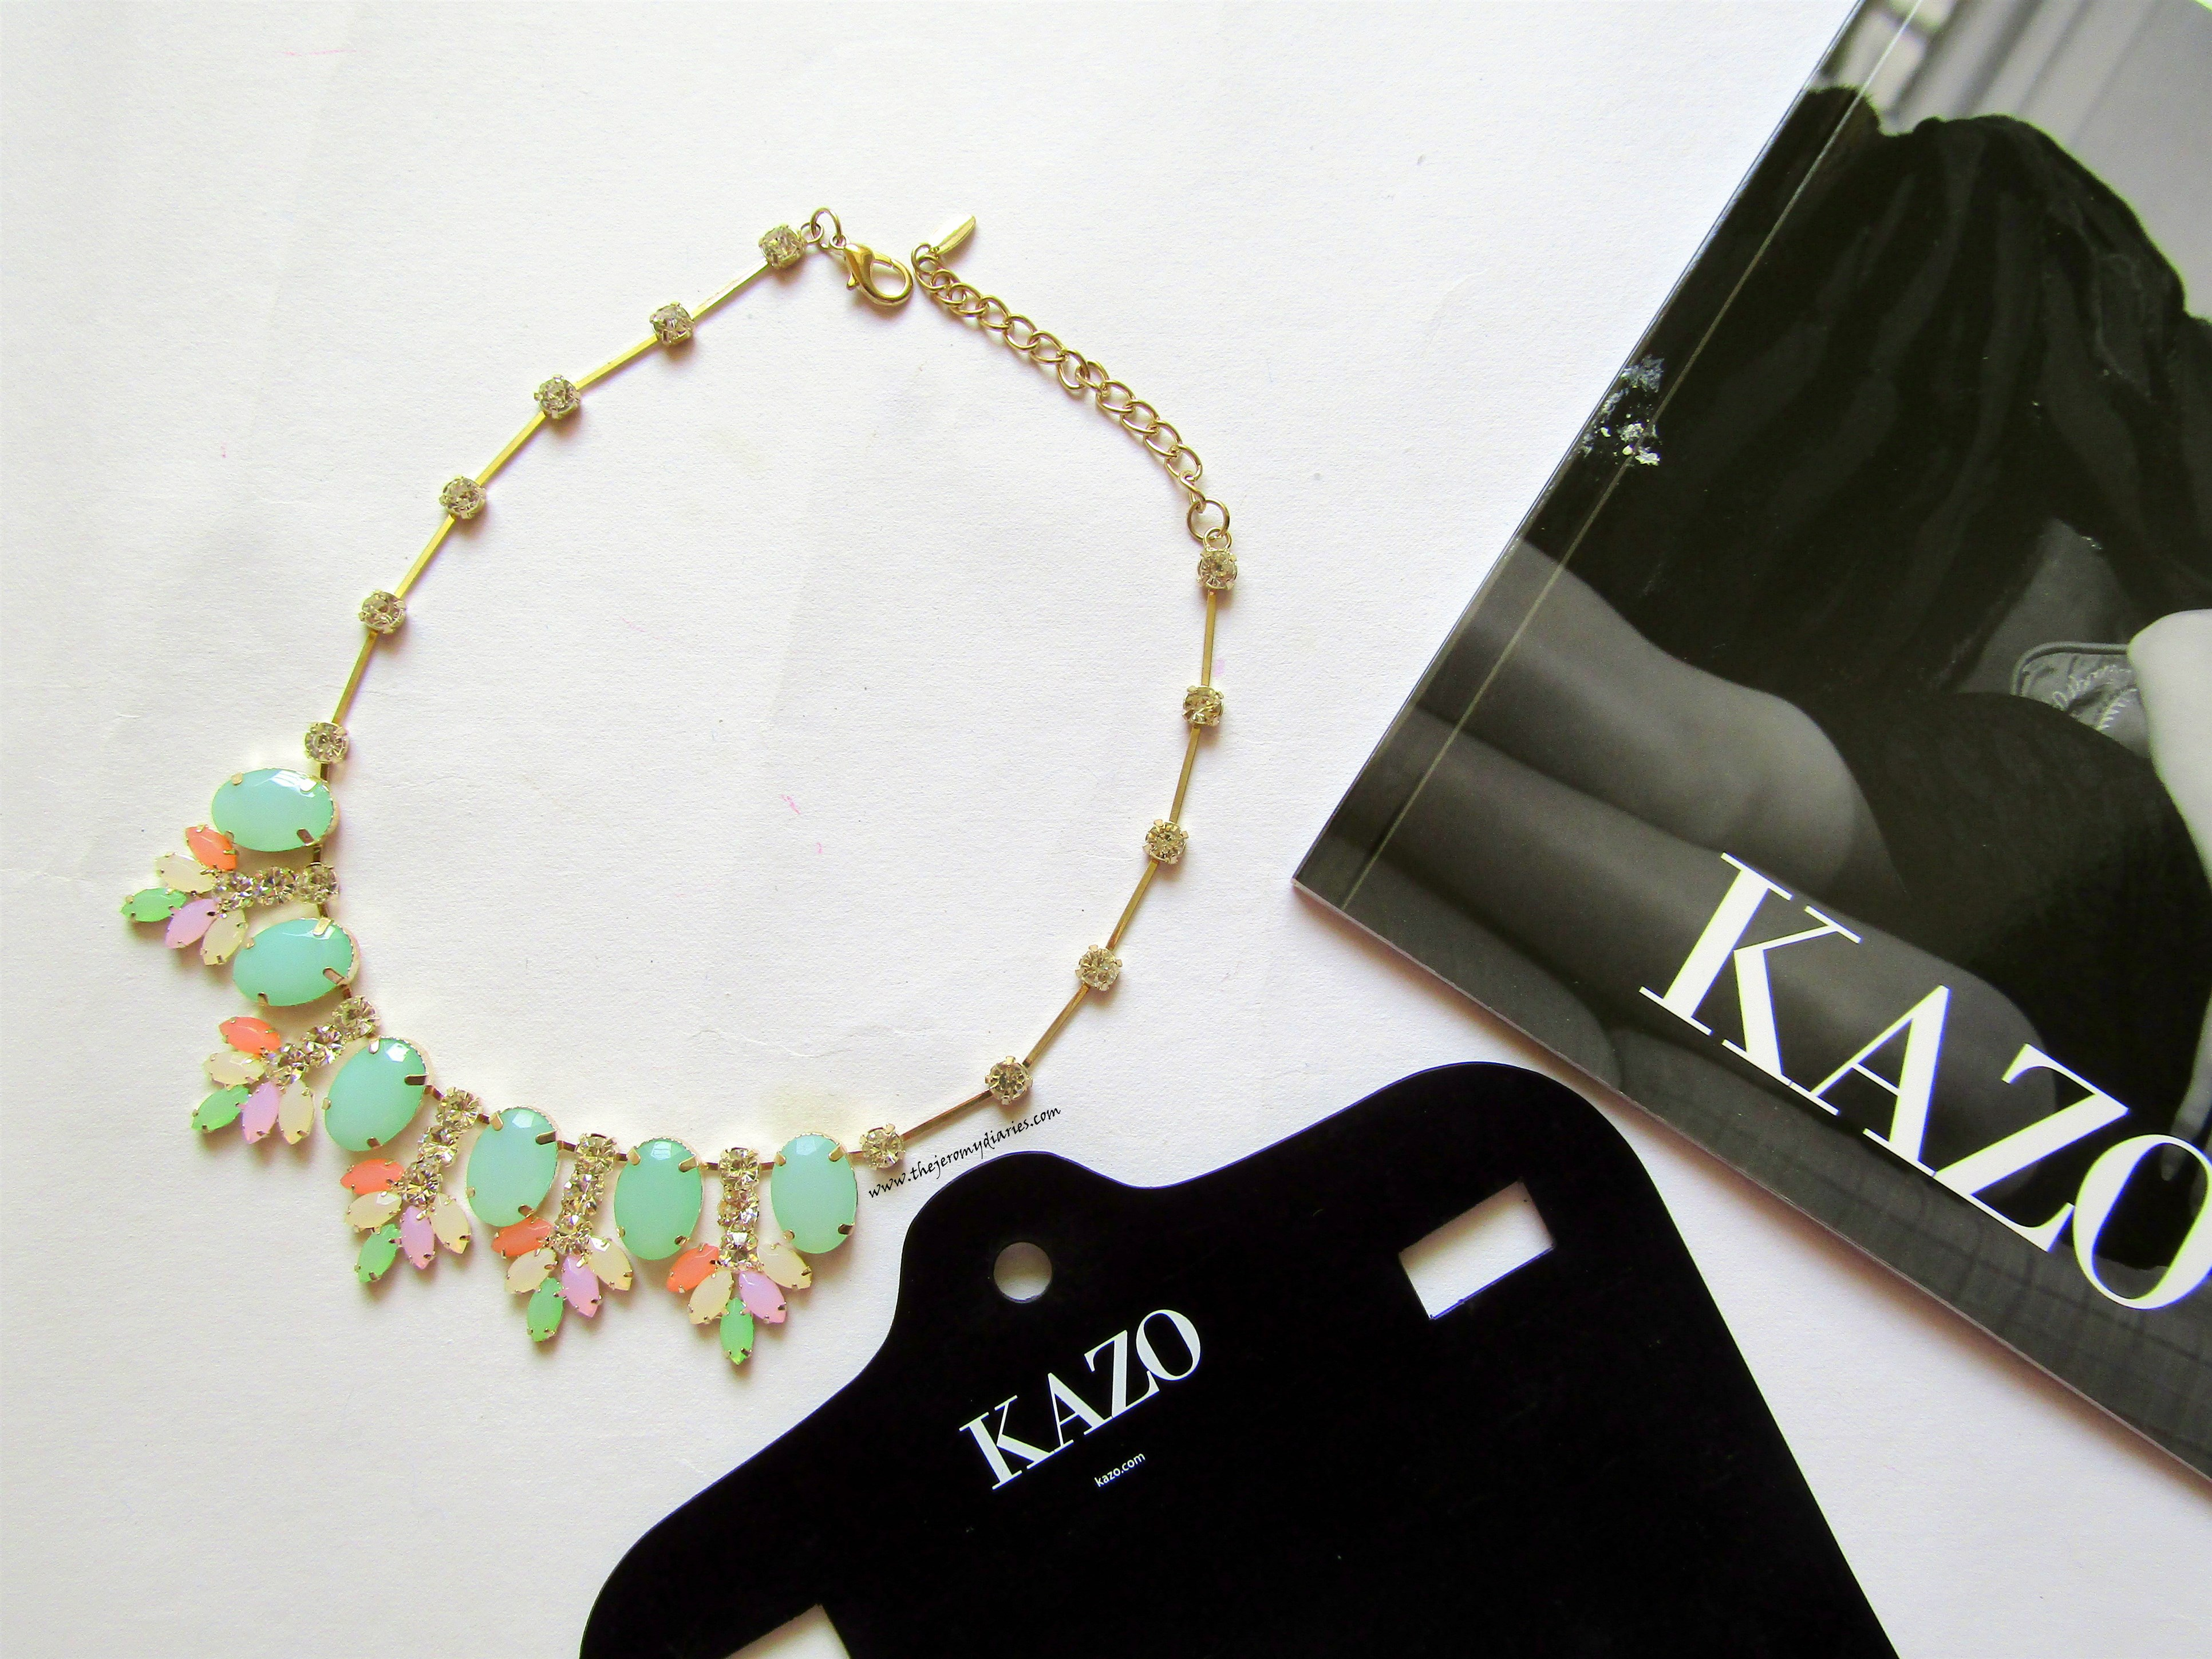 kazo statement neckpieces and accessories the jeromy diaries (3864 x 2898)